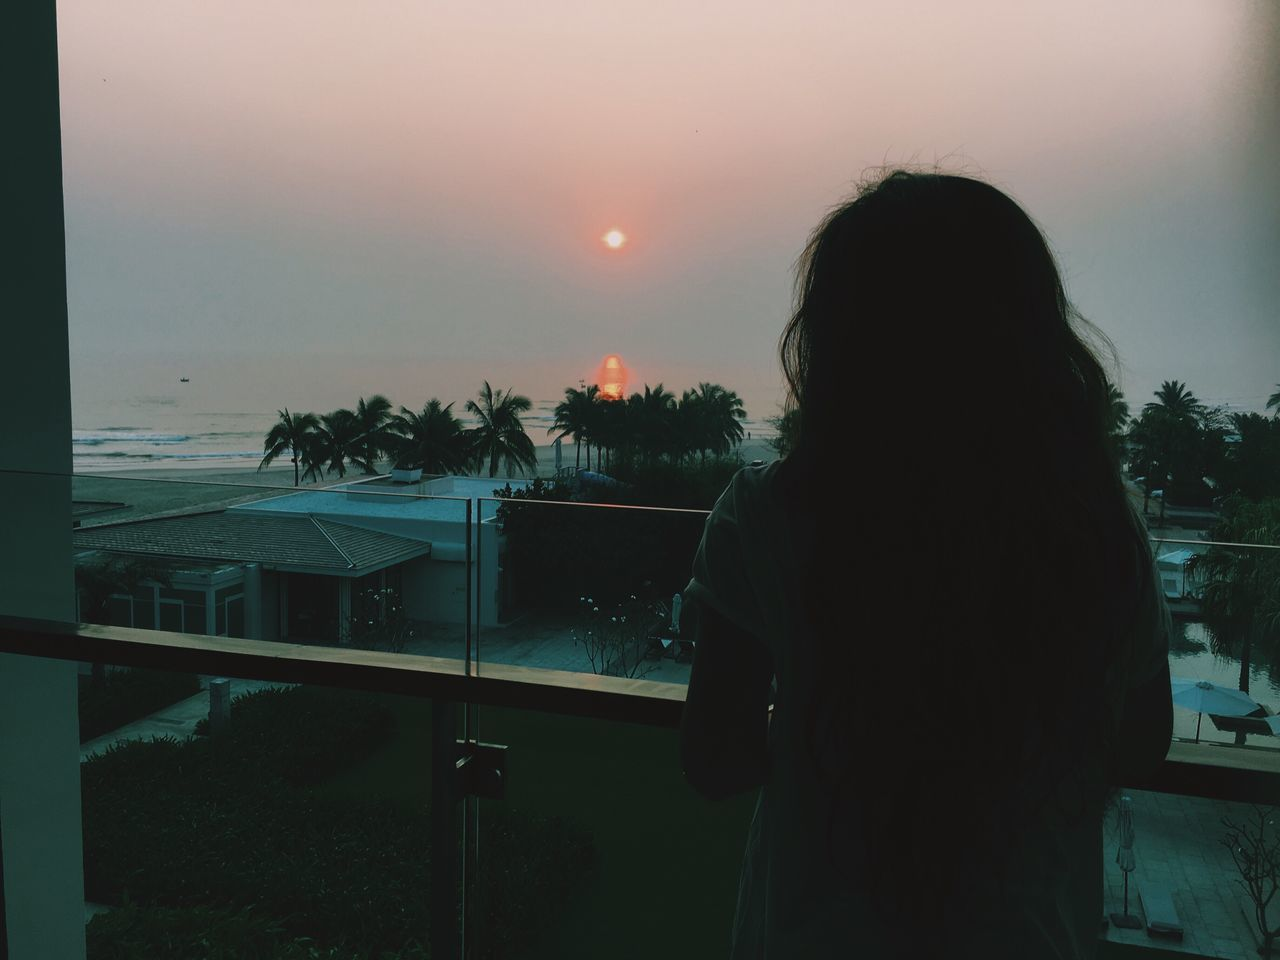 Beautiful Surroundings Nice Atmosphere Relaxing Hotel Chilling Hello World Vacation Vietnam Showcase March Da Nang Hyatt Regency Hyatt VSCO The Great Outdoors - 2016 EyeEm Awards Vscocam Vscogood Relaxing Sunrise Japanese  Good Vibes